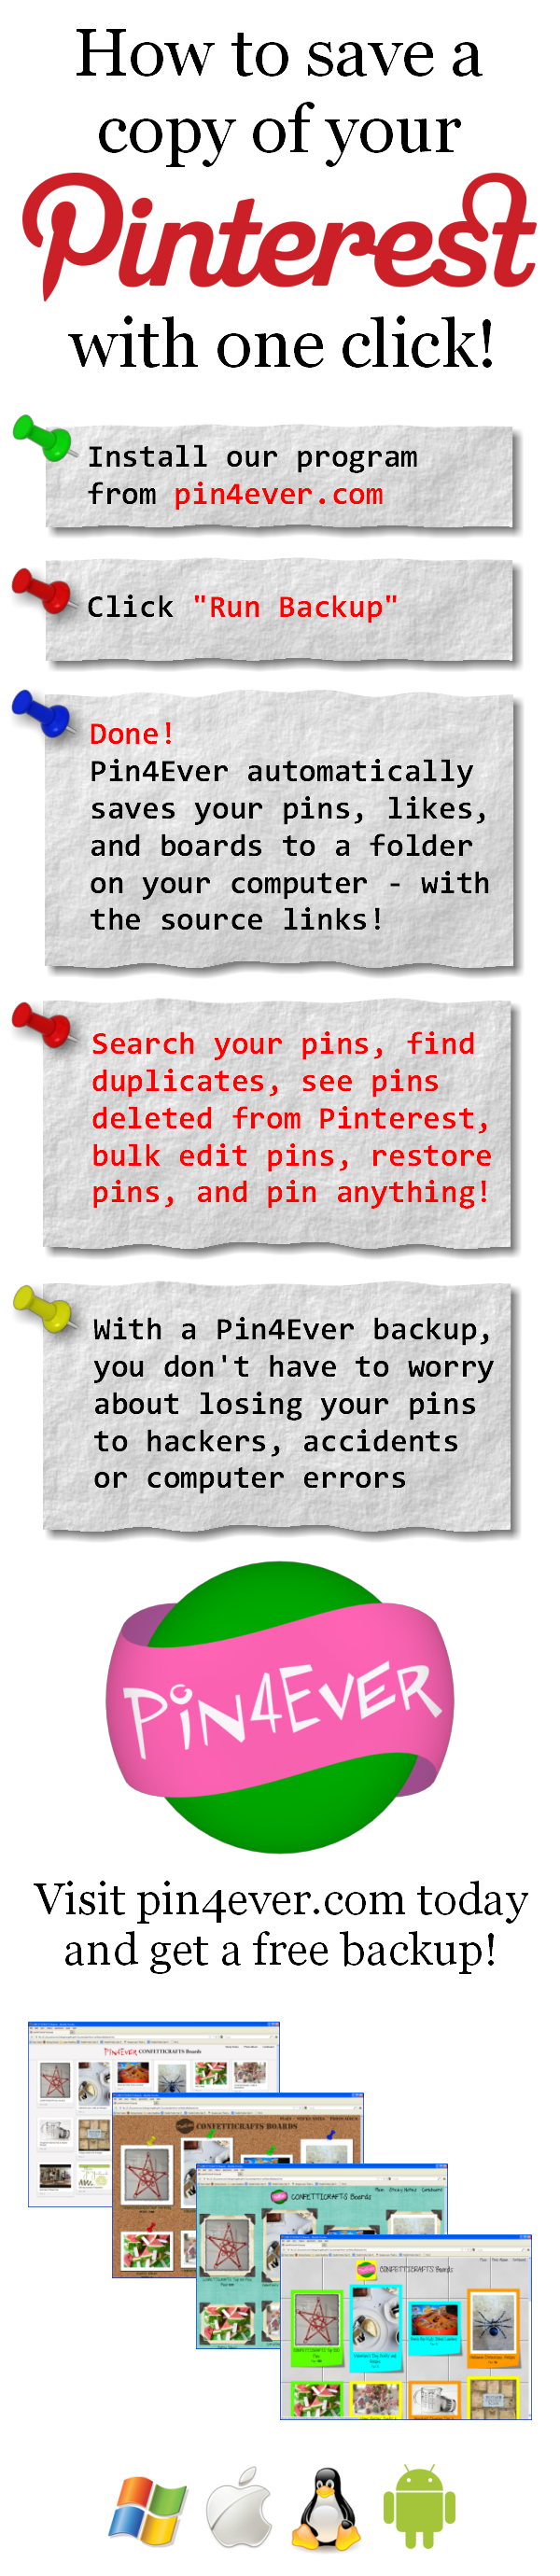 Are your pins protected? Pin4Ever has saved, edited or uploaded 245,912,509 pins since September 2012. Go to pin4ever.com and try it free!